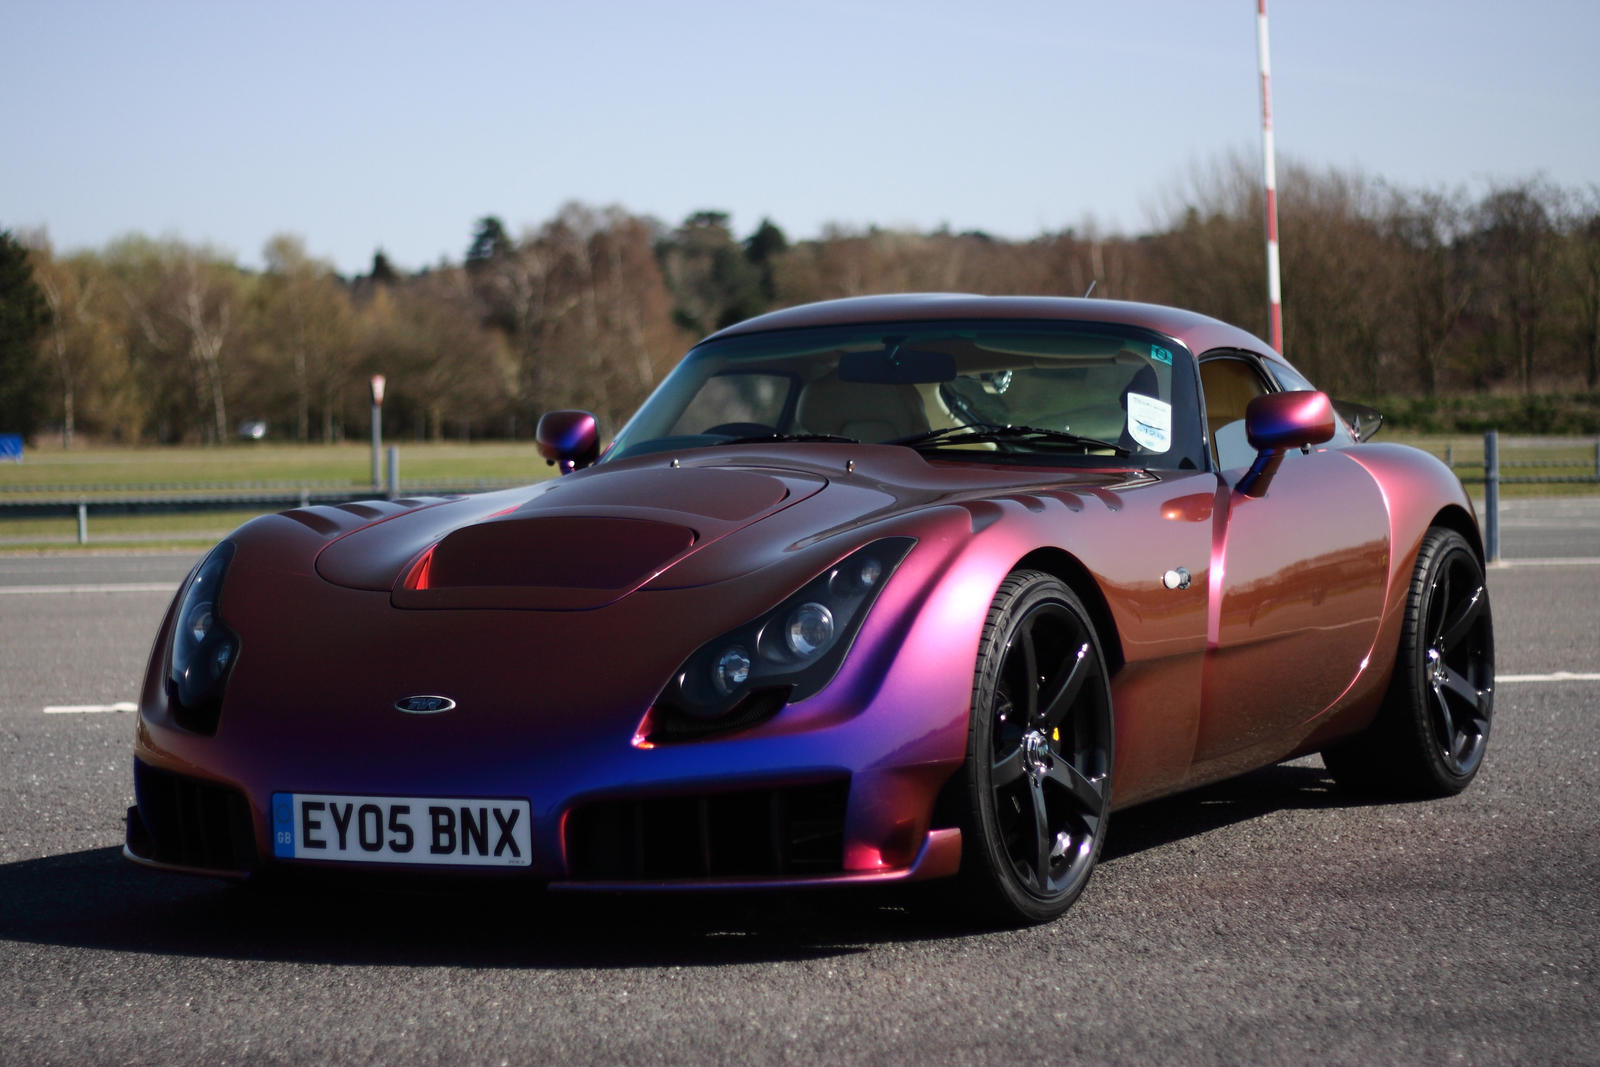 Tvr Sagaris By Tef2one On Deviantart